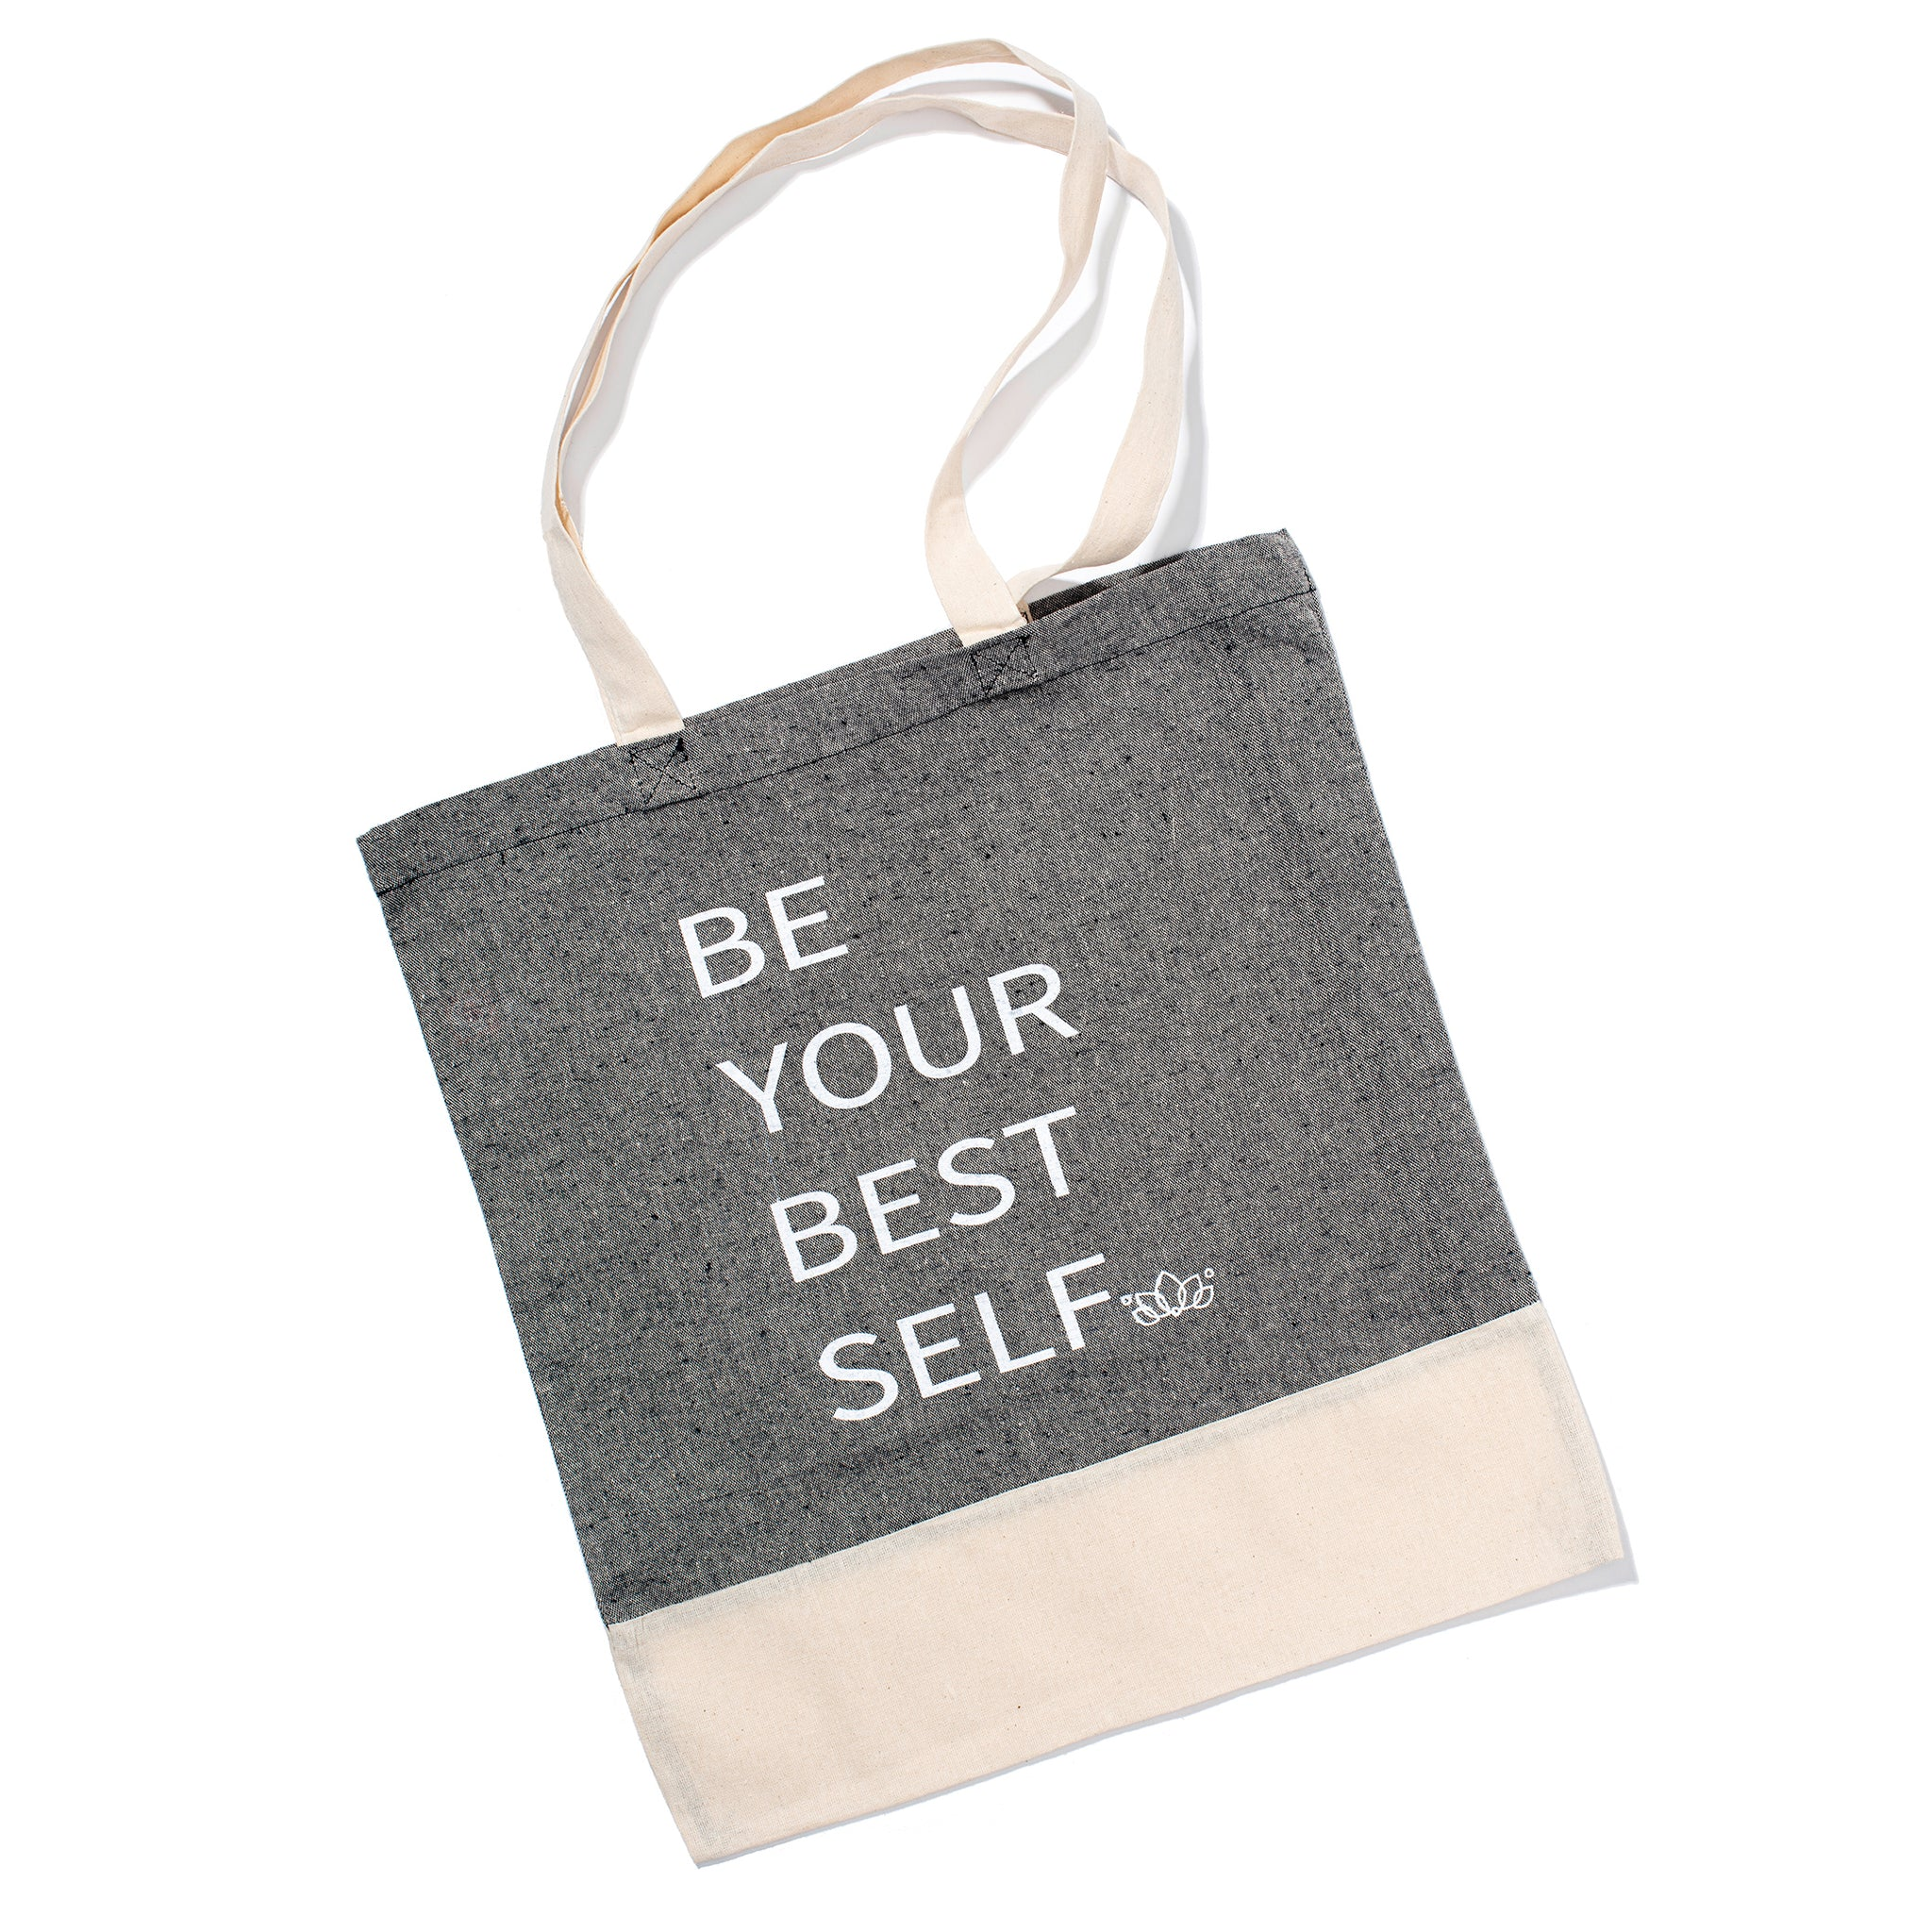 Elate Cosmetics reusable recycled cotton gray and white Tote Bag for low waste vegan  lifestyle.